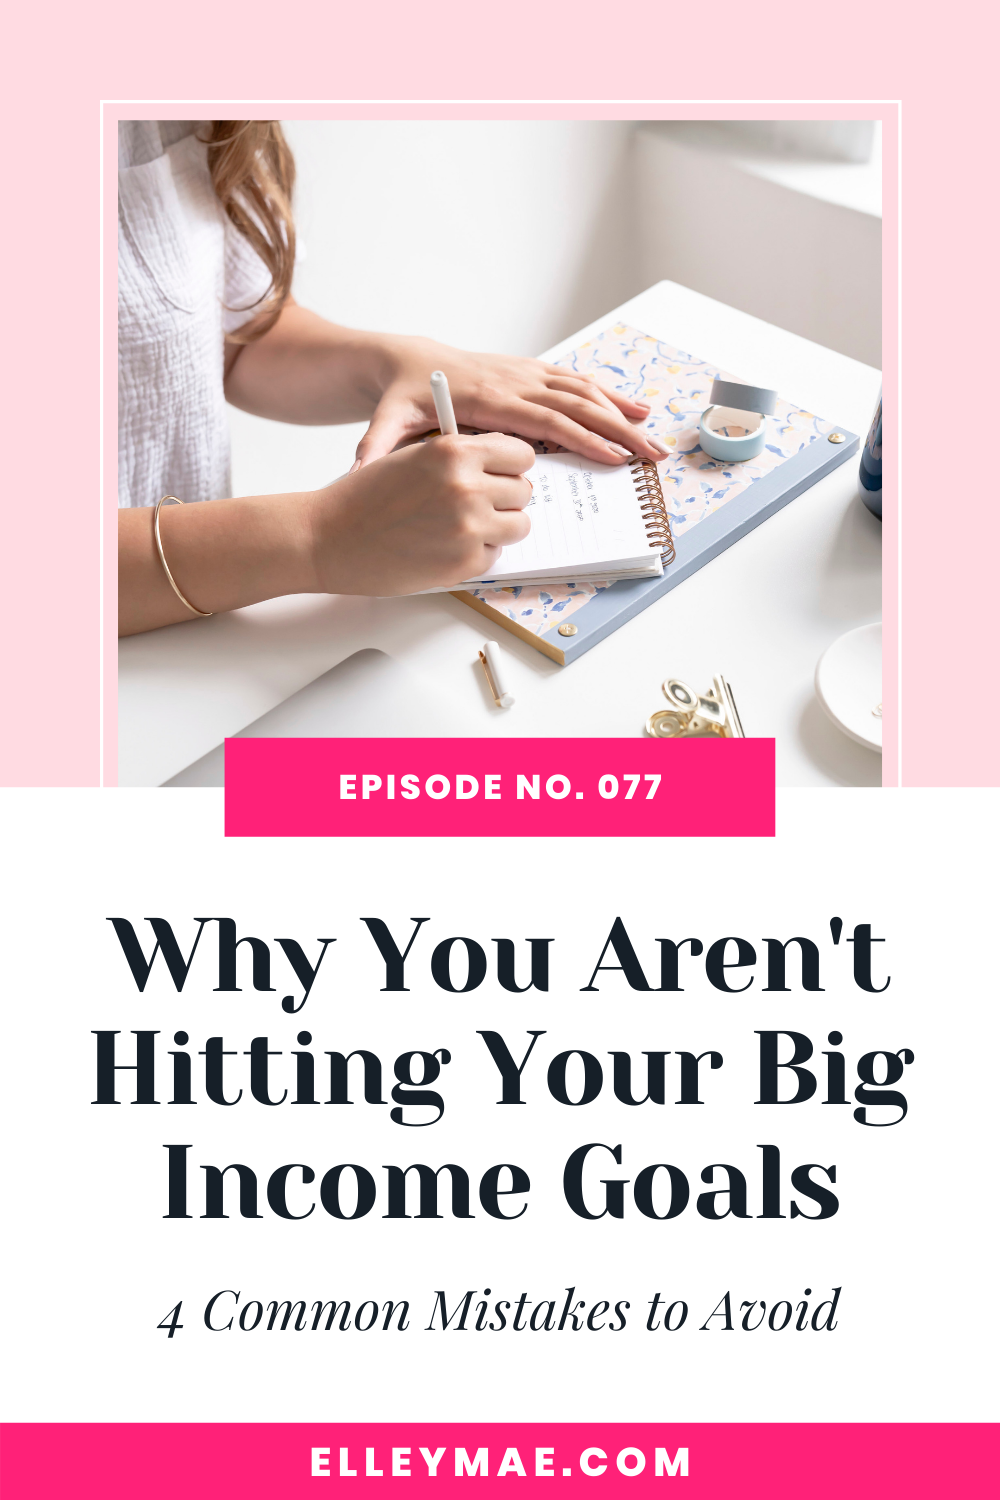 077. Why You Aren't Hitting Your Big Income Goals (+ How to Change That)